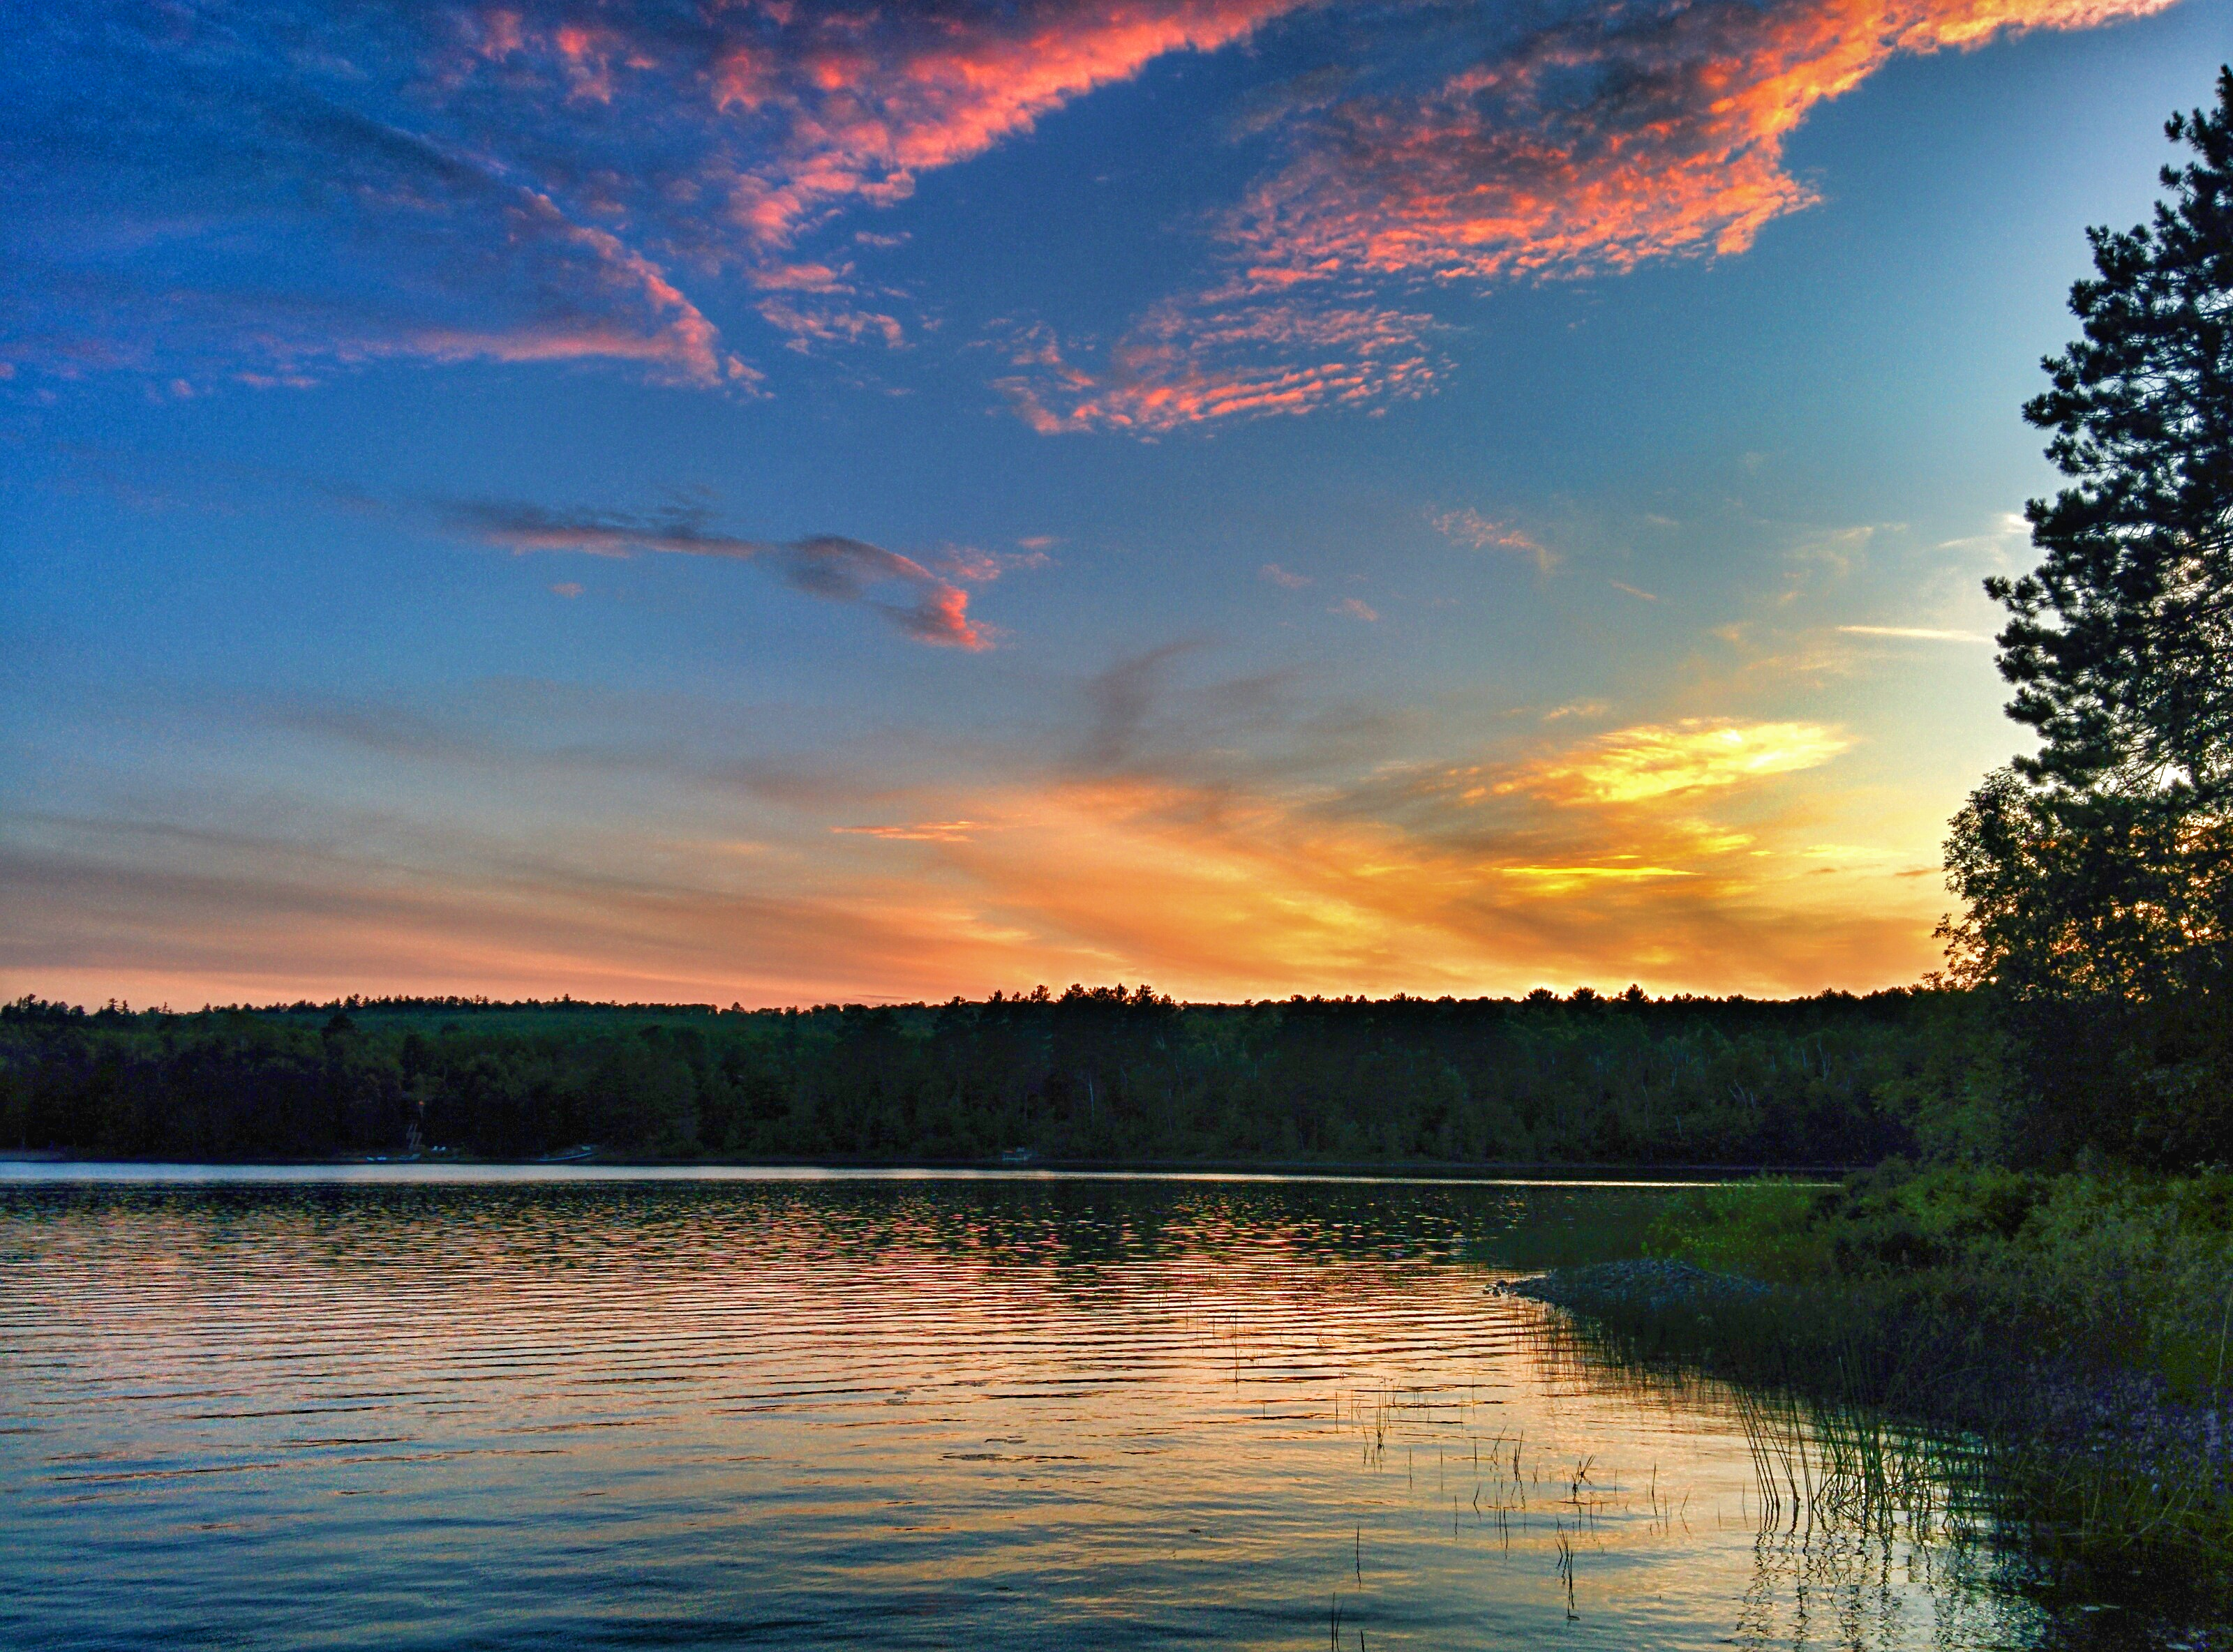 Iron Range Sunset by Courtney Celley